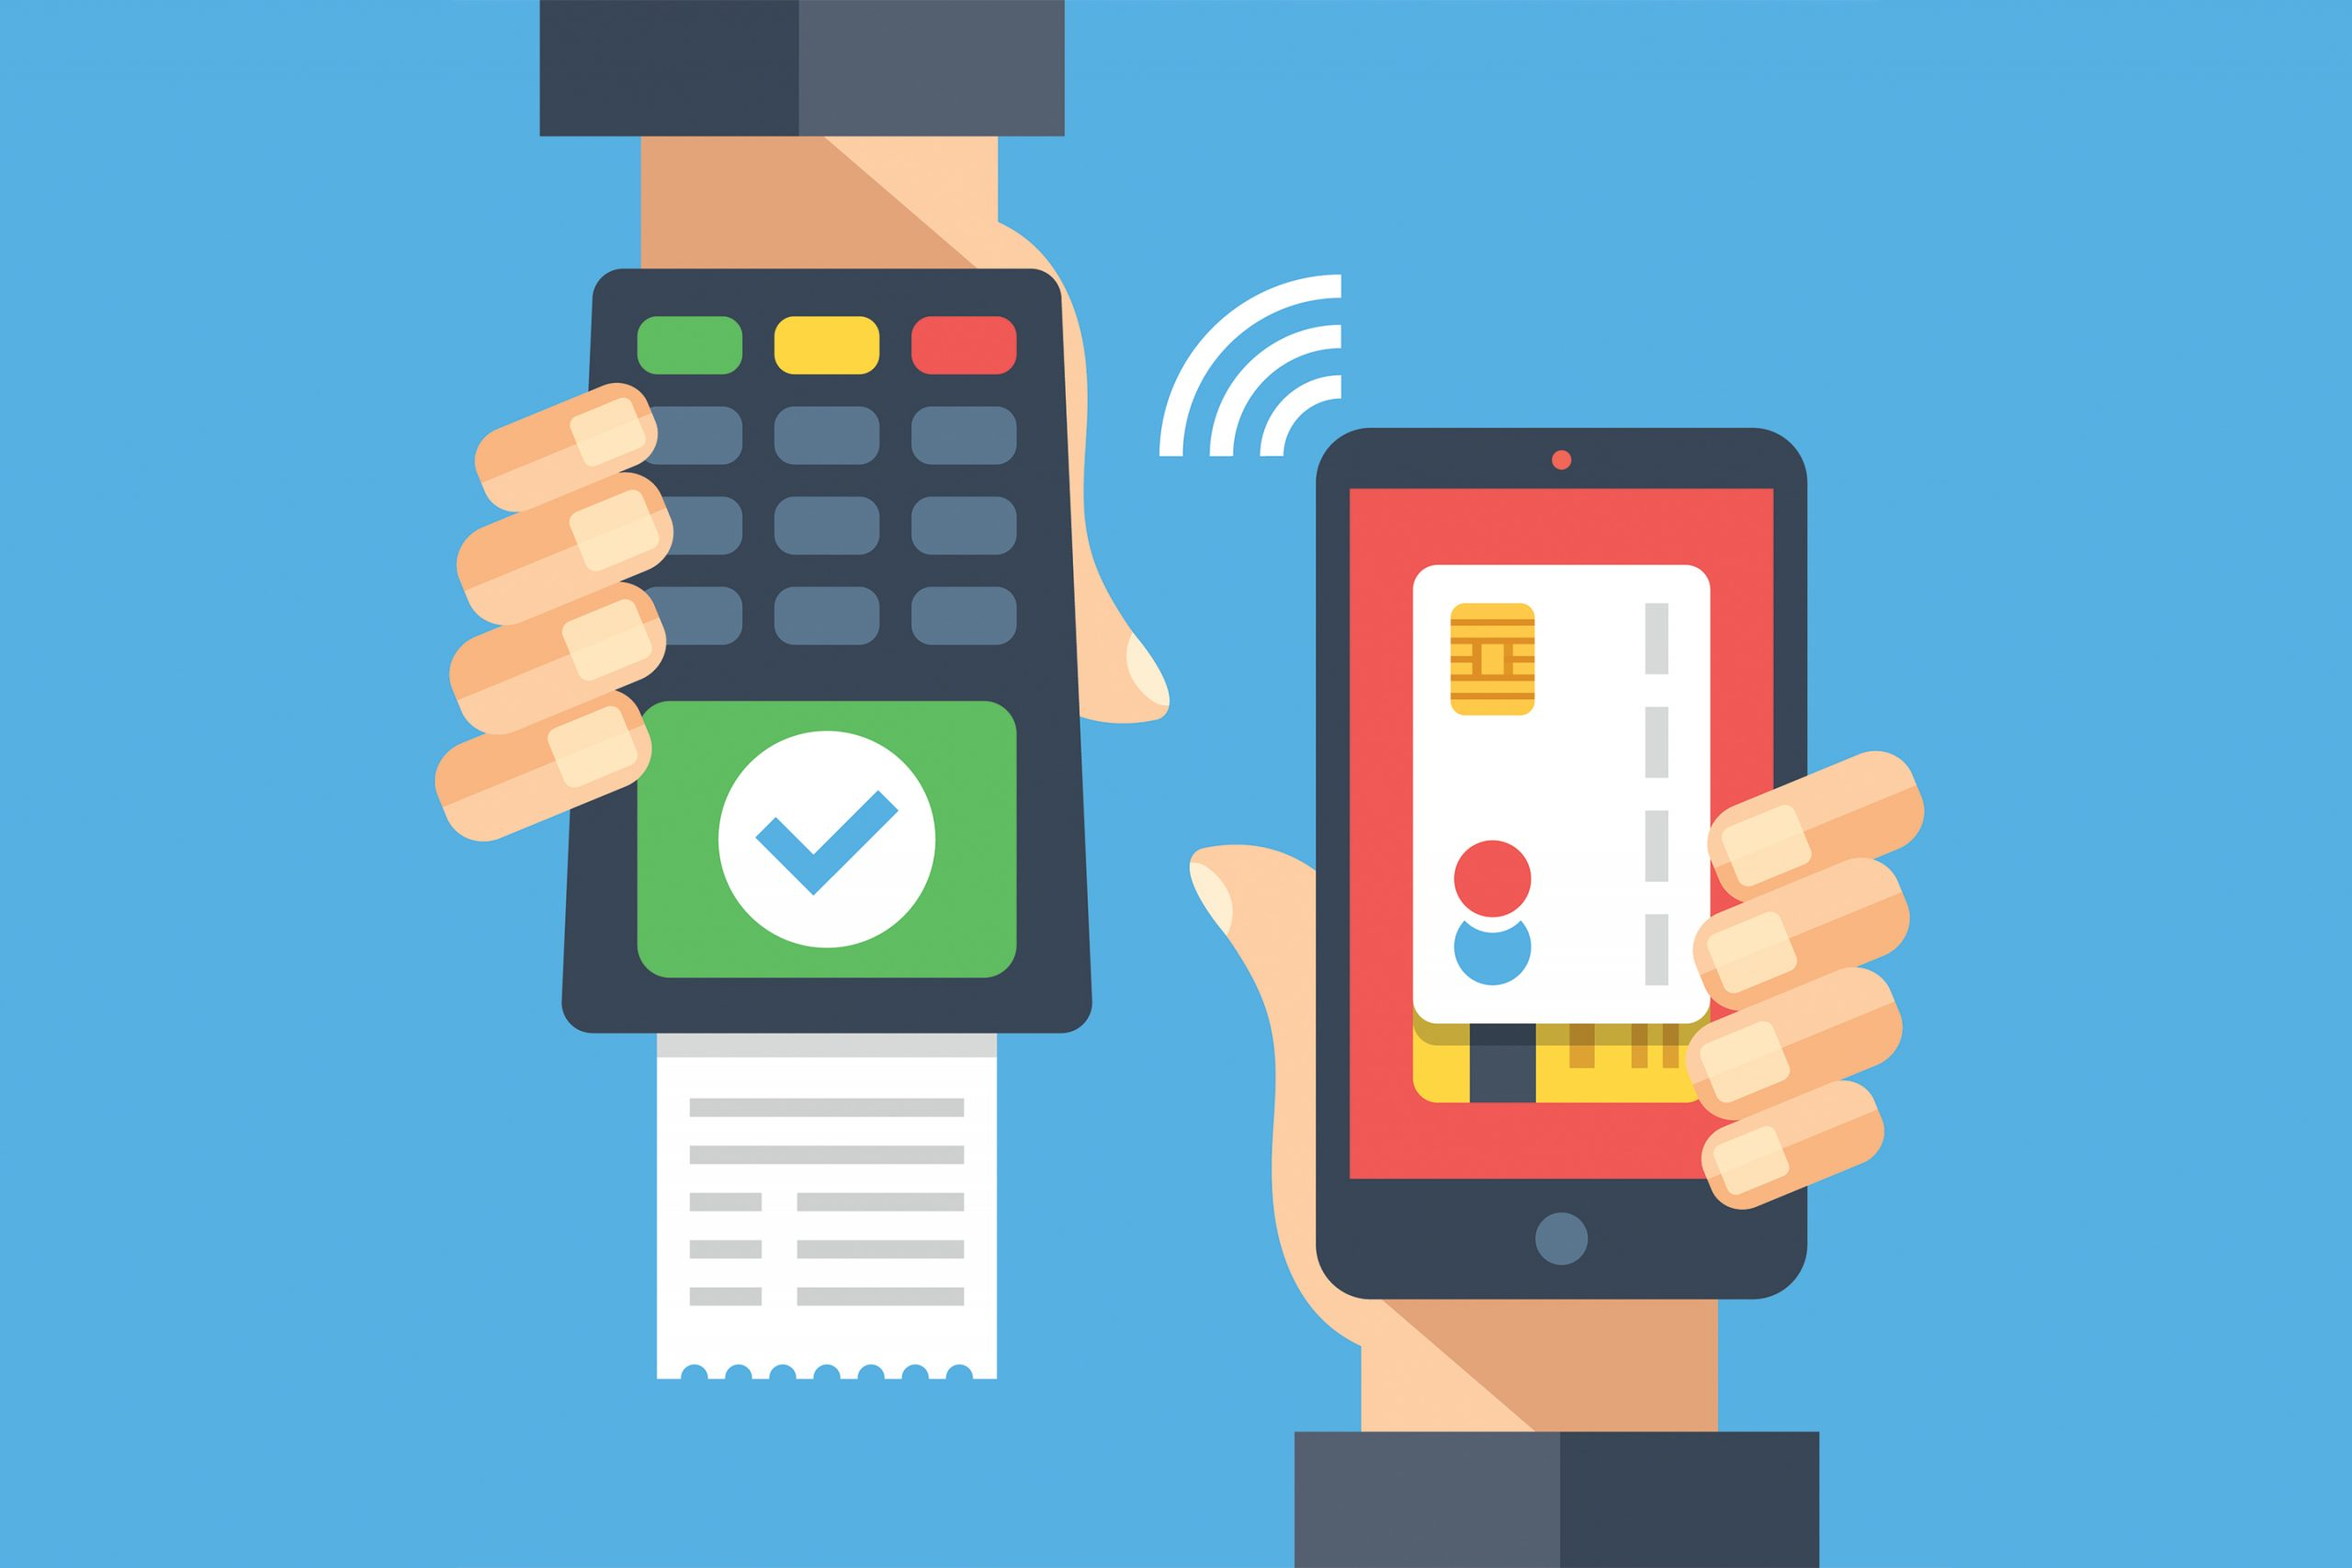 The advantages and drawbacks of cashless societies